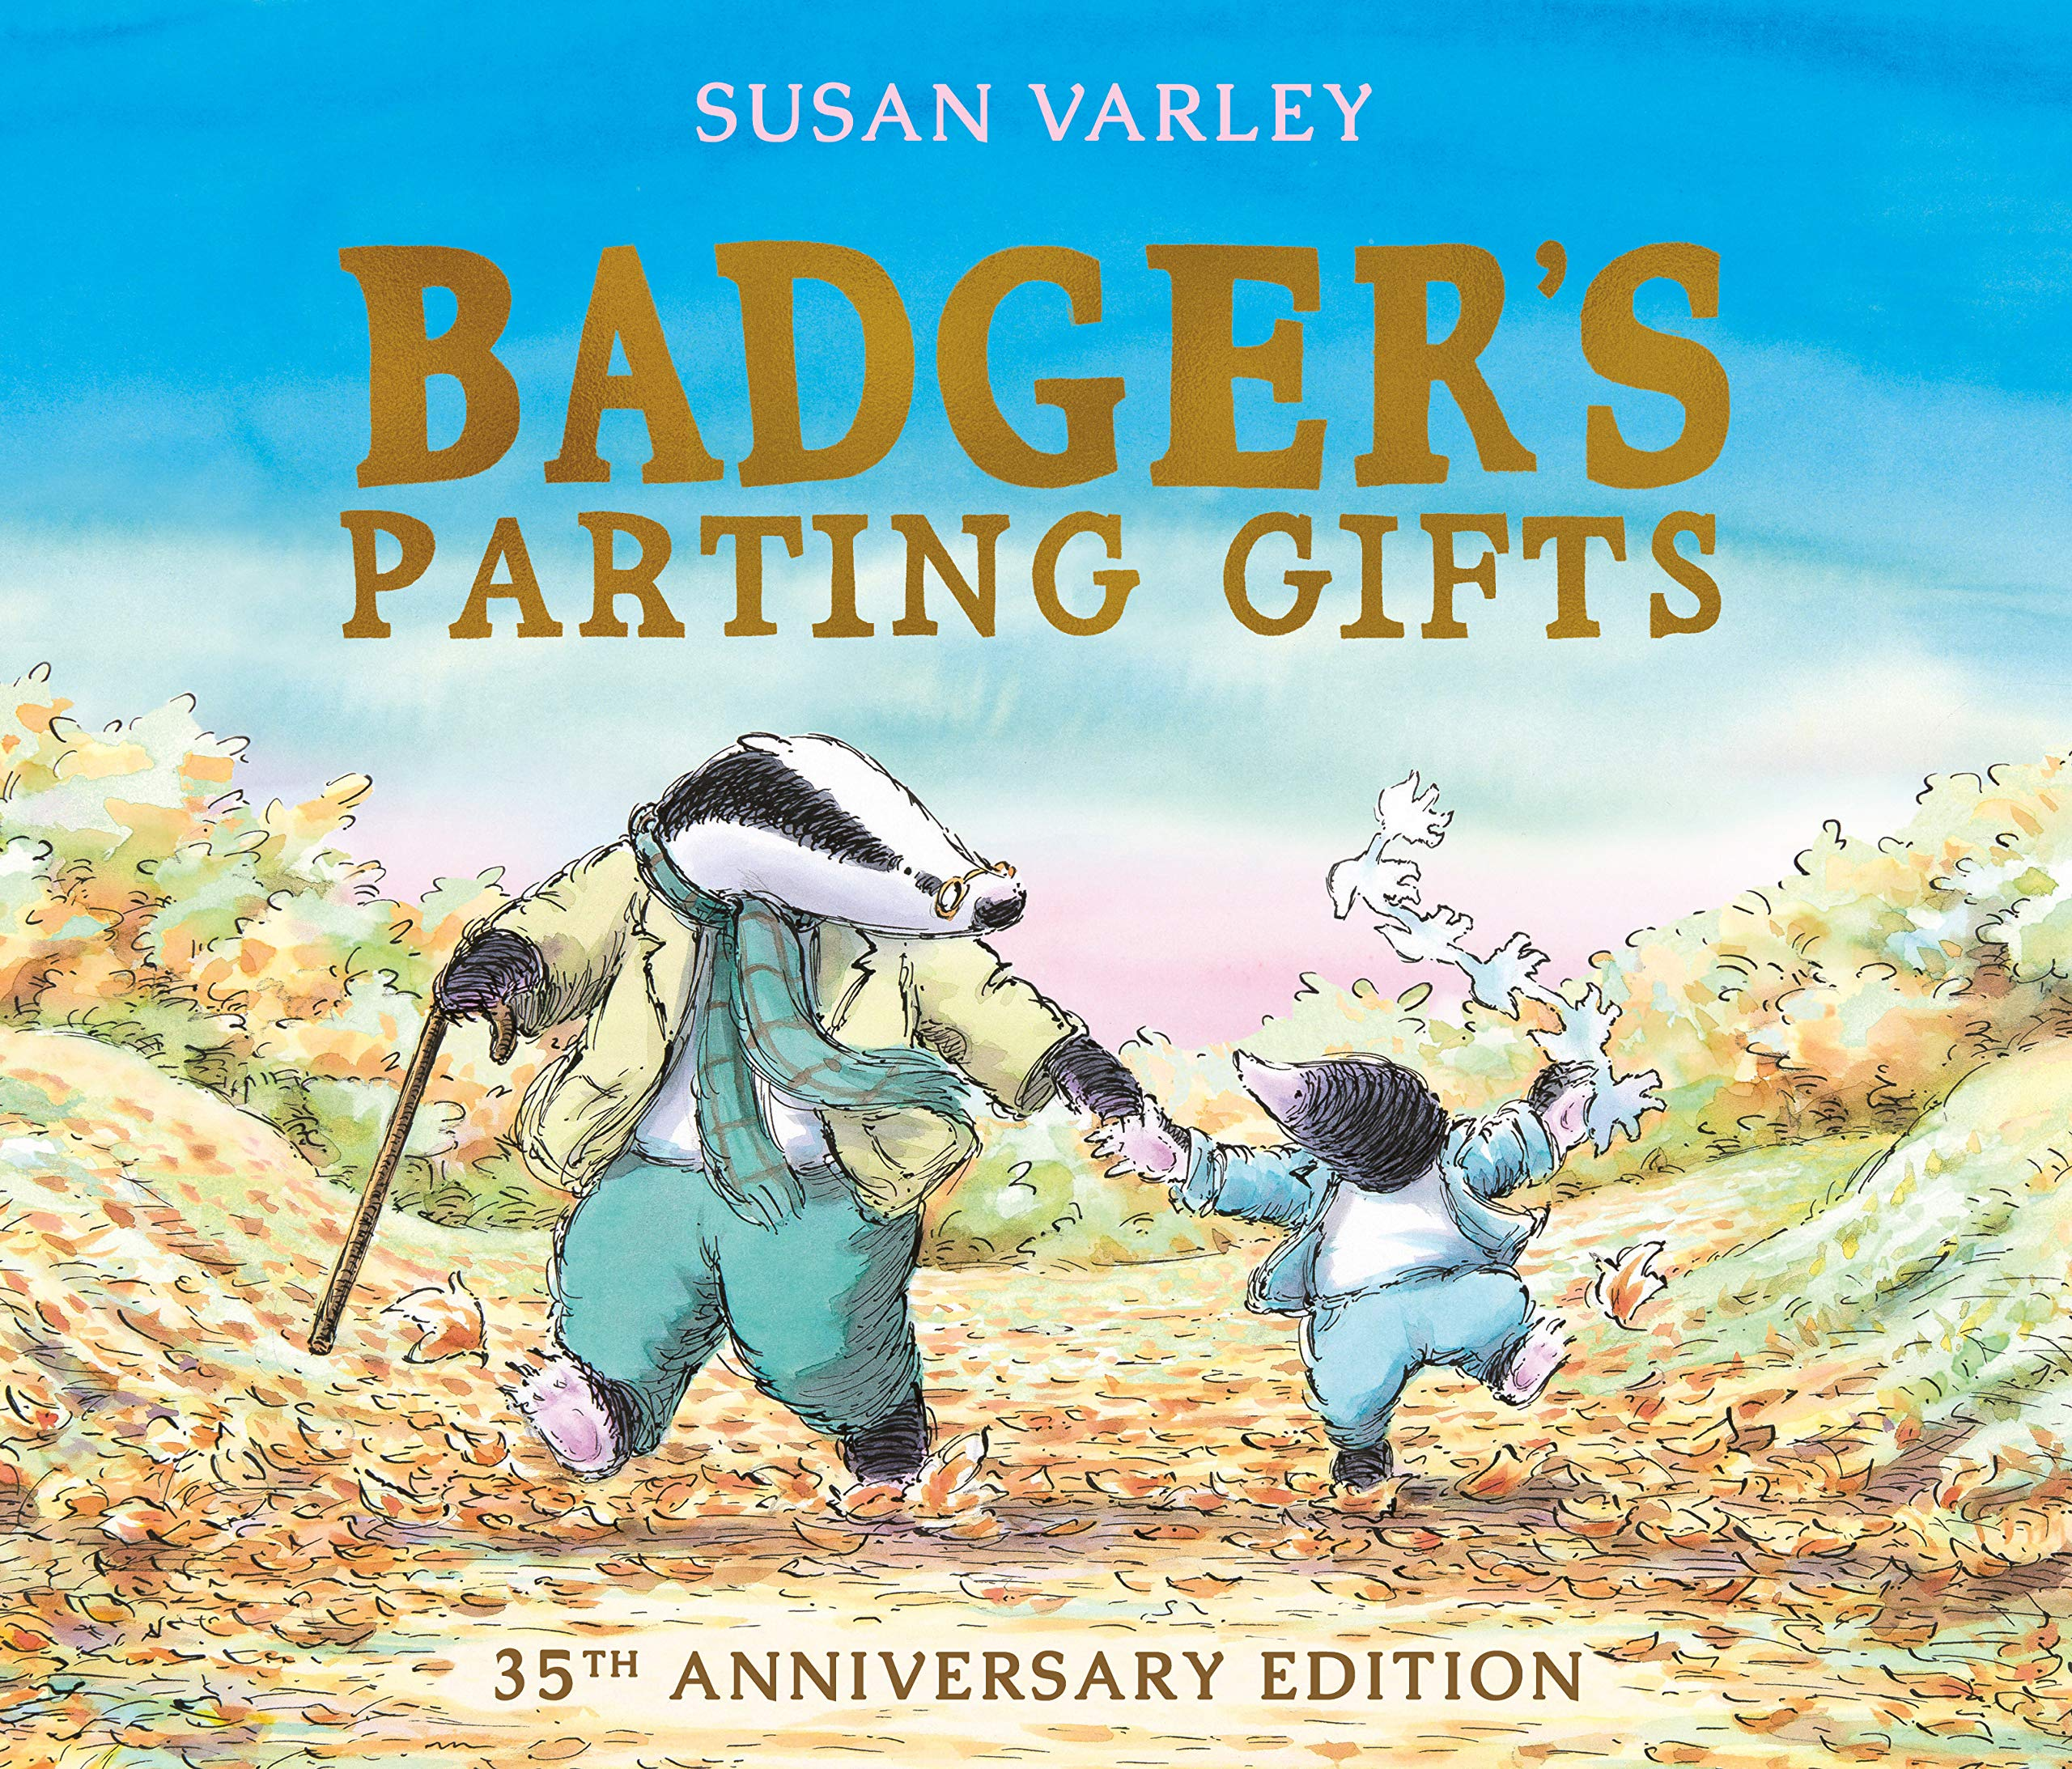 Badgers parting gifts amazon susan varley 9781849395144 books fandeluxe Images